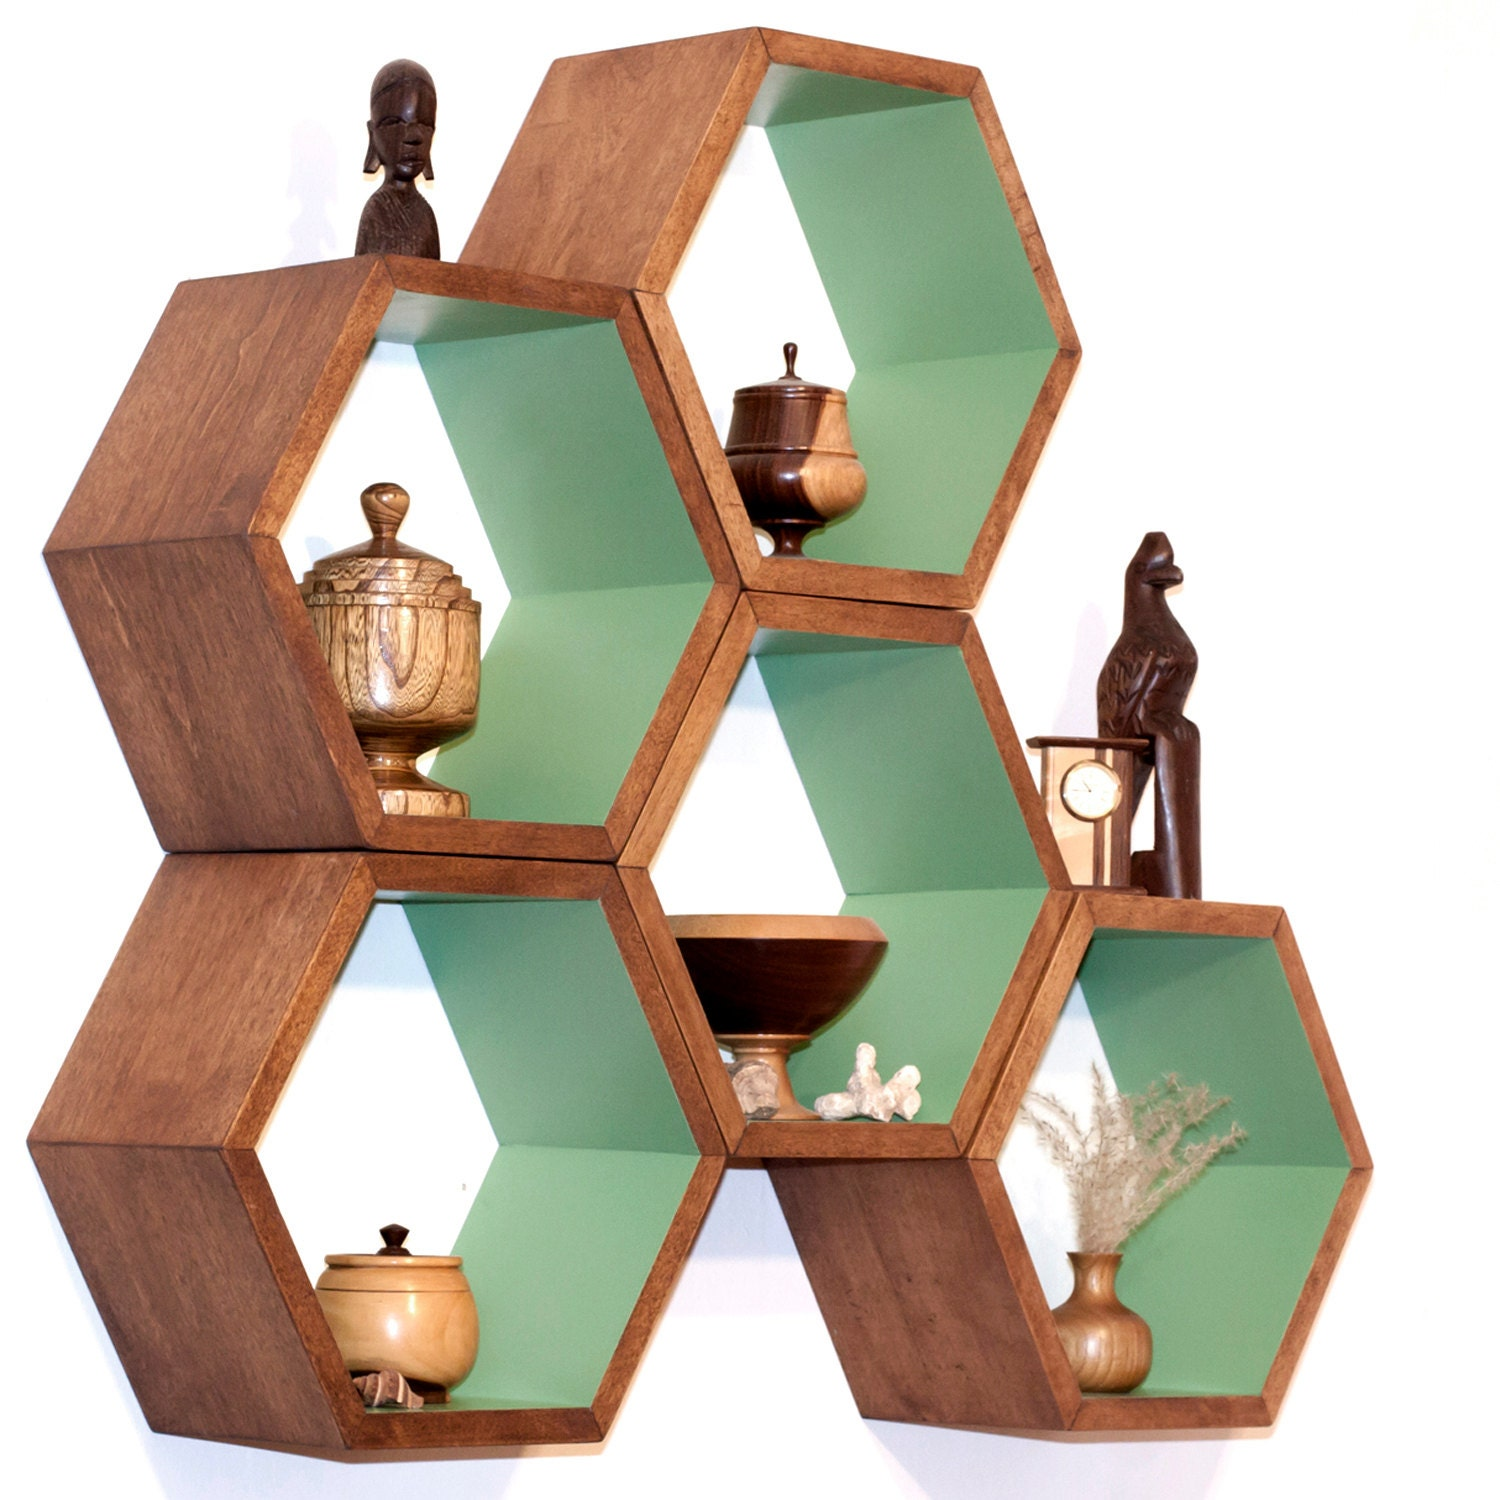 Storage Shelves Honeycomb Shelving Wood Floating Hexagon